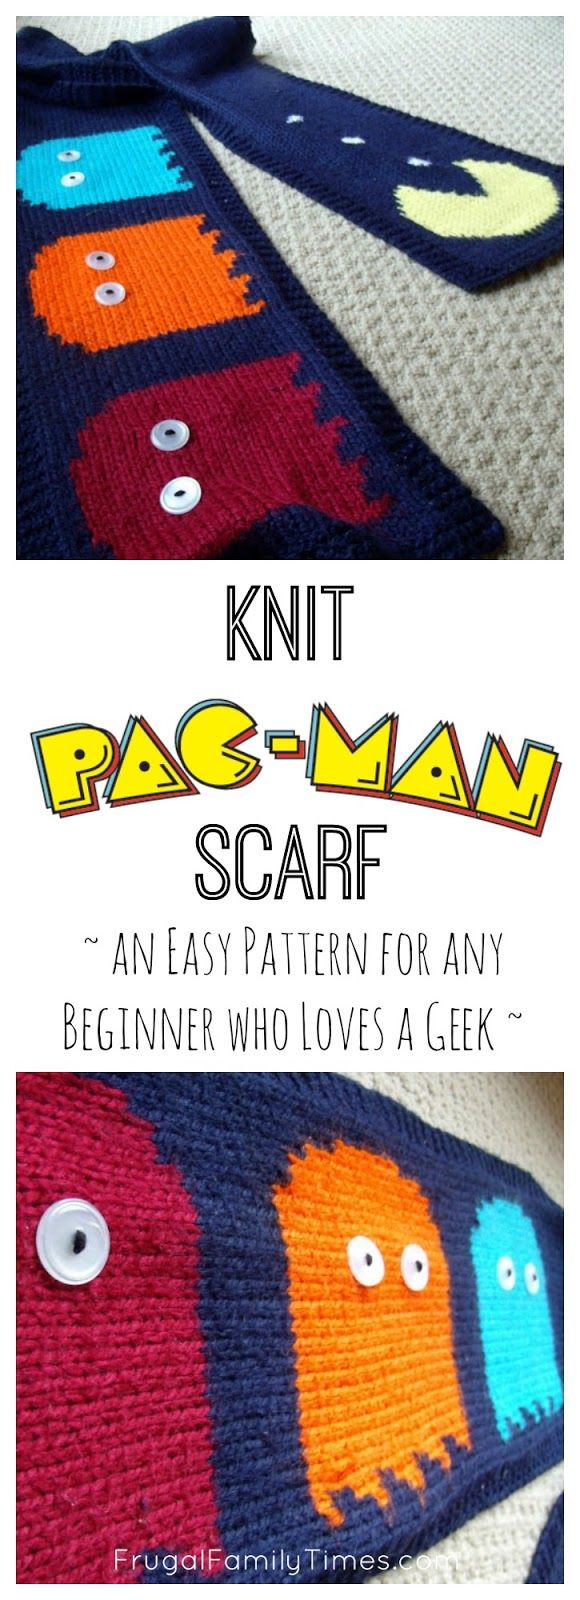 A simple pattern for an 8-bit, retro, 80s PacMan scarf. Easy enough for beginners to knit. Cool enough for any man, woman or child to wear. A great gift idea for the video game geek in your life!